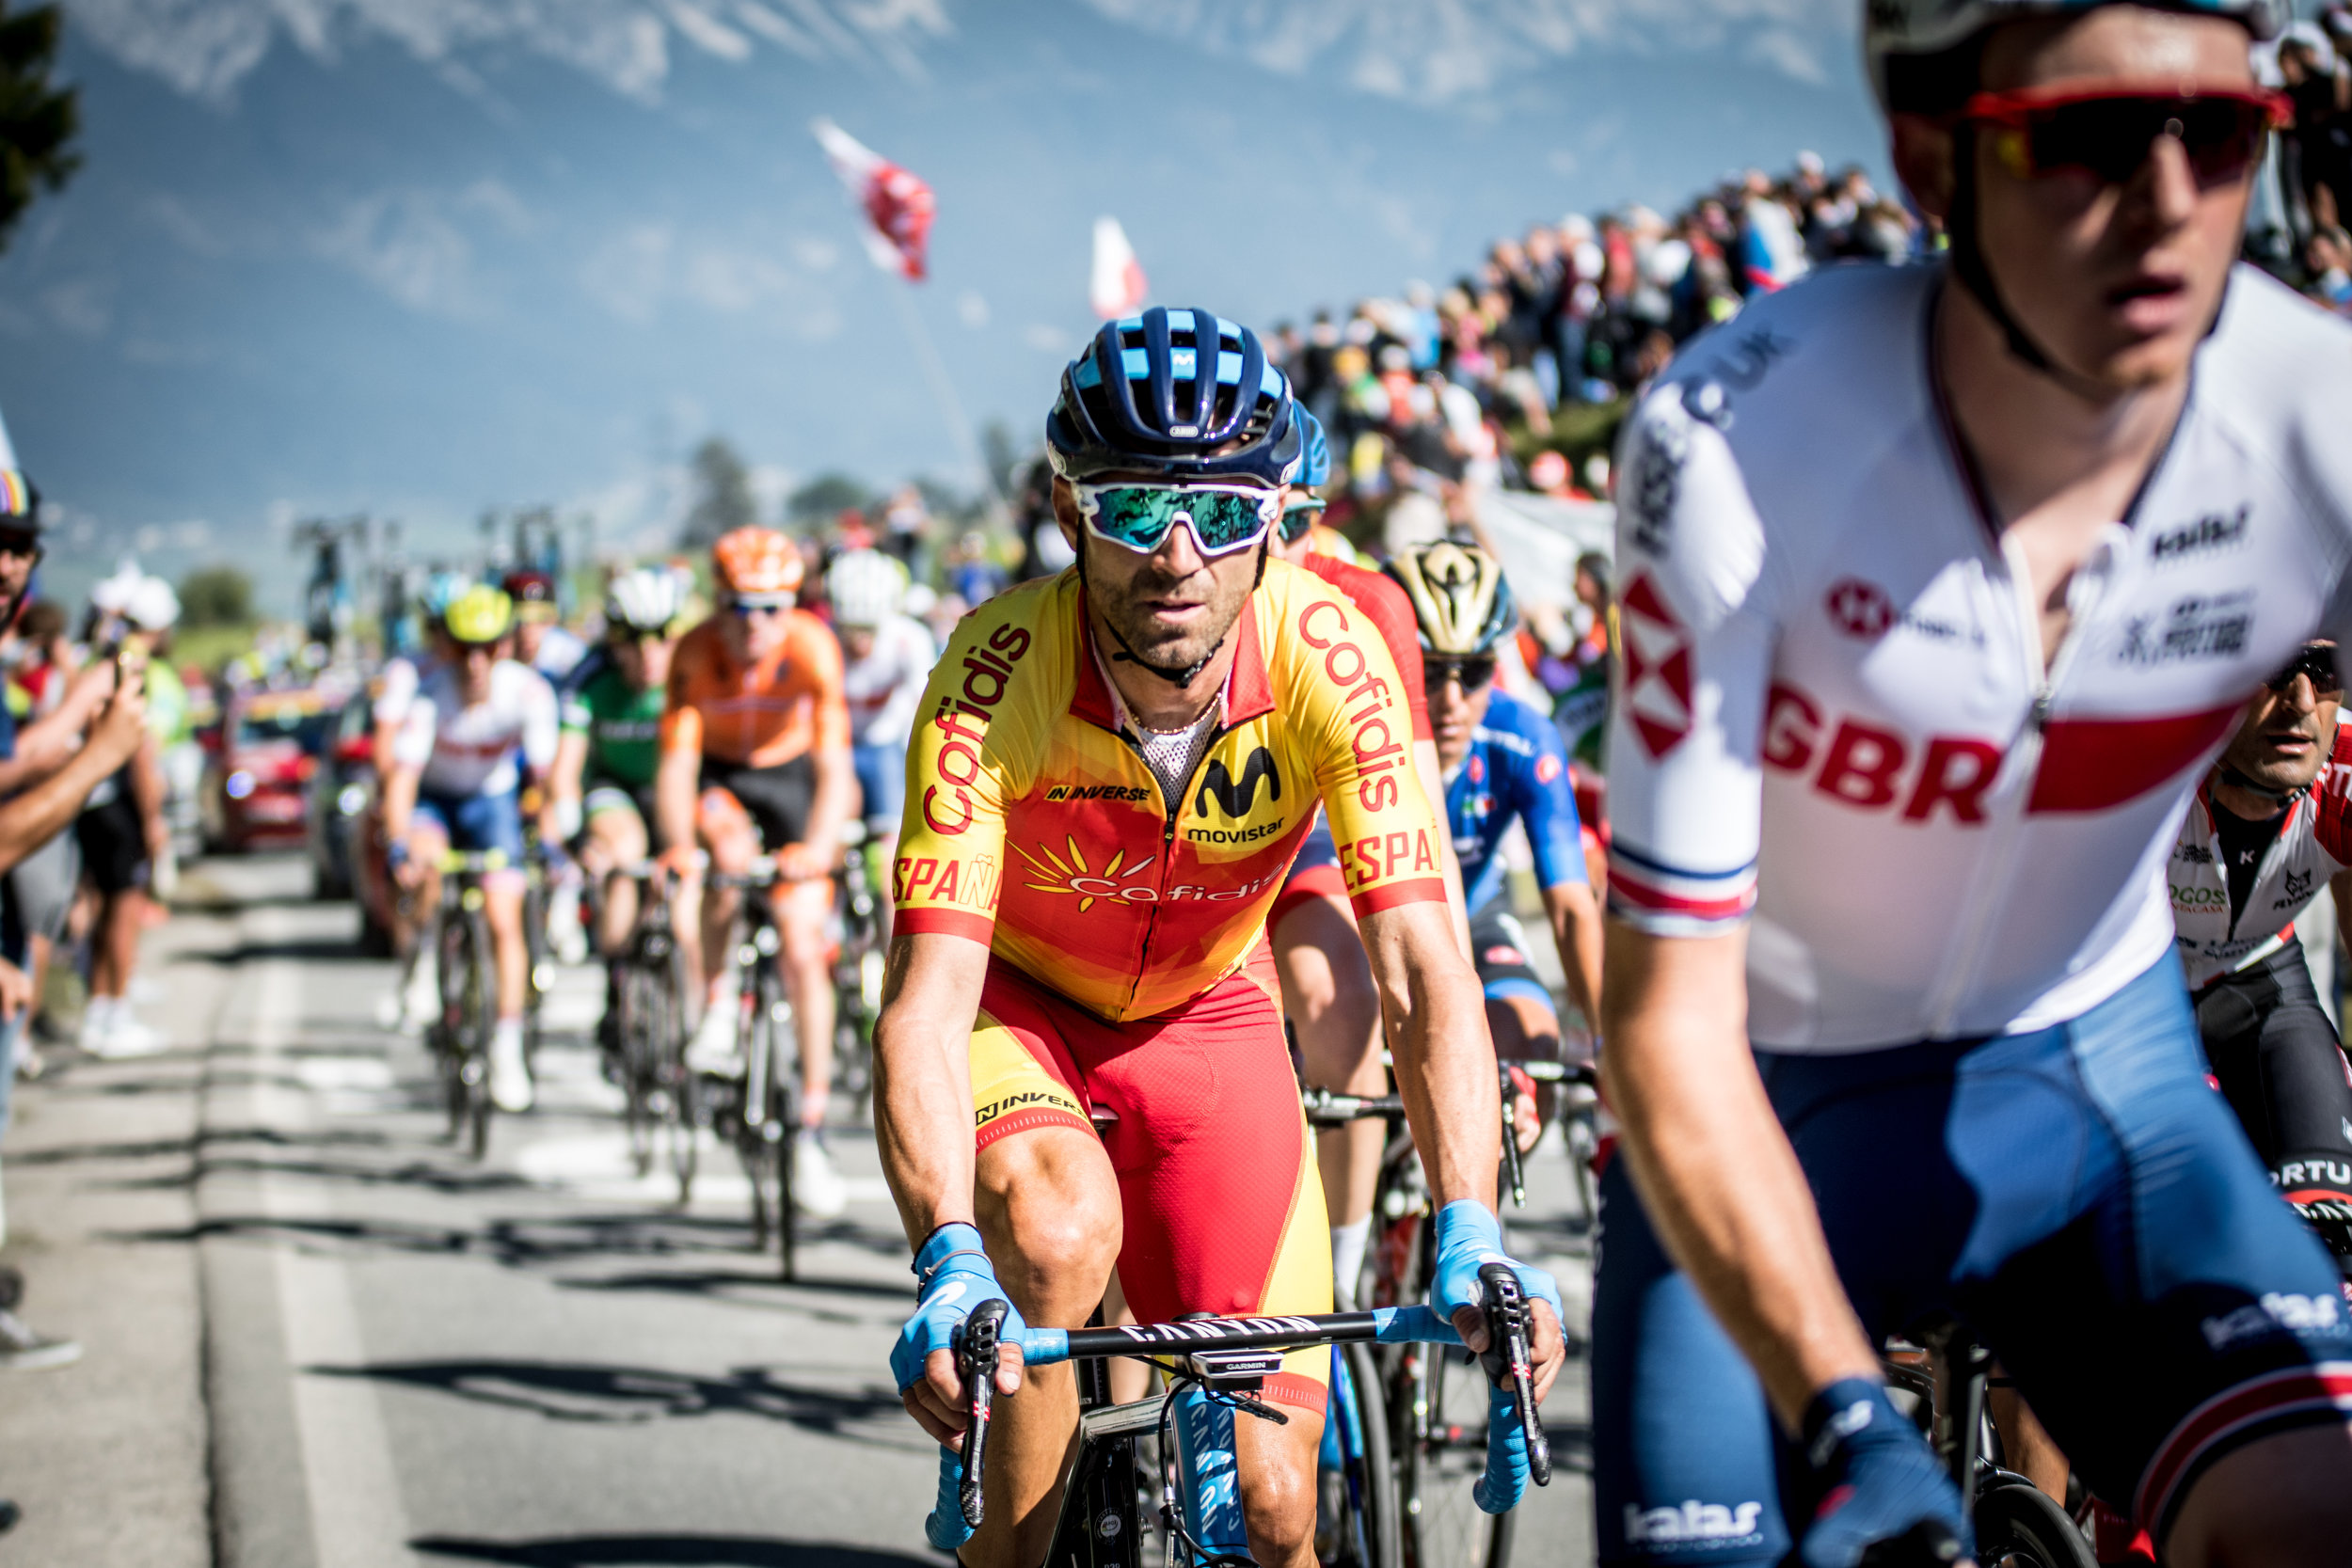 Alejandro Valverde early in the race. The veteran called upon all his experience here in Innsbruck.